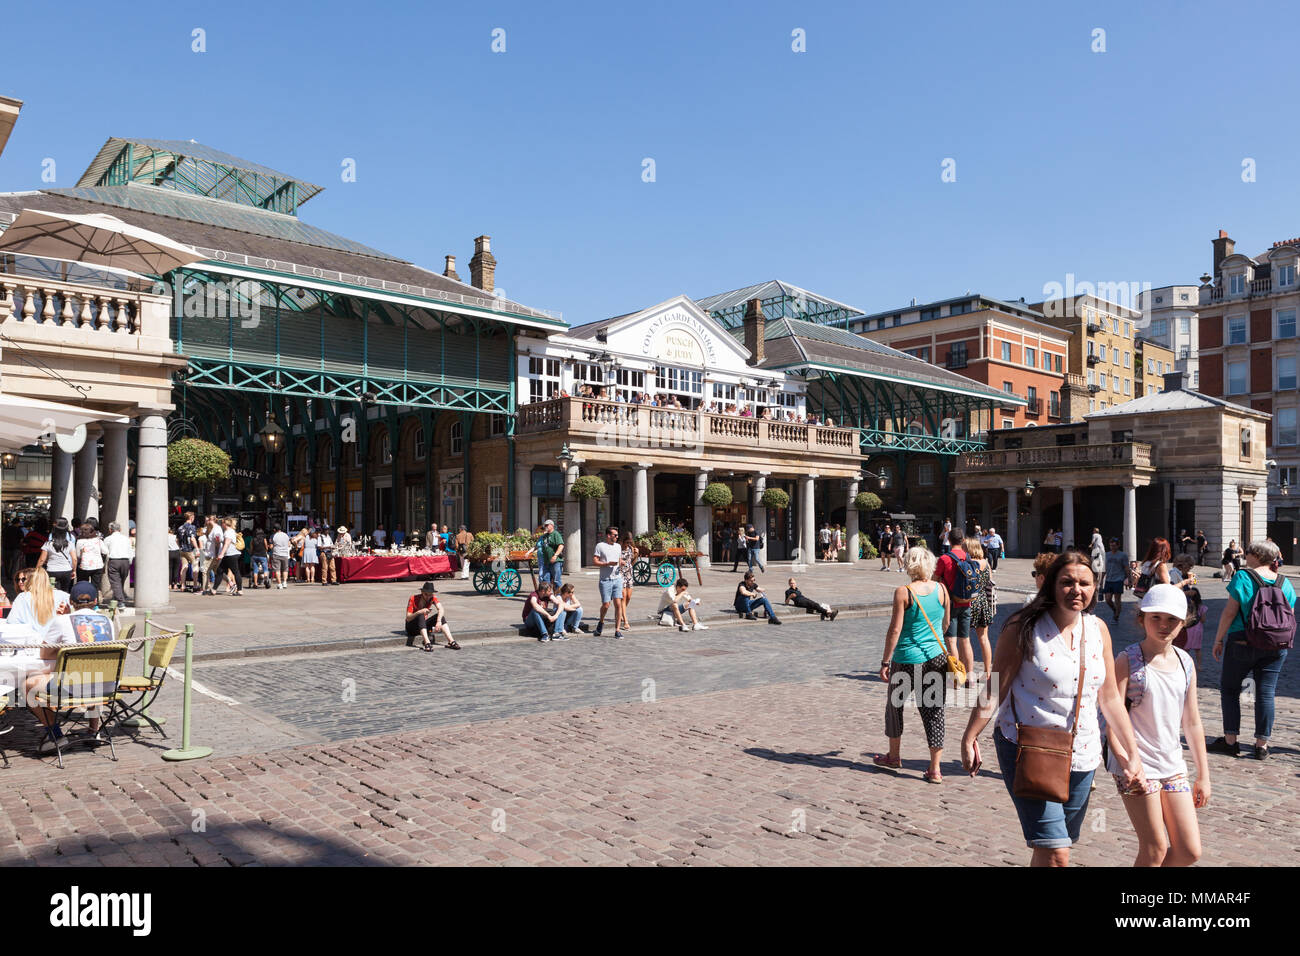 Famous covered markets in Covent Garden. - Stock Image